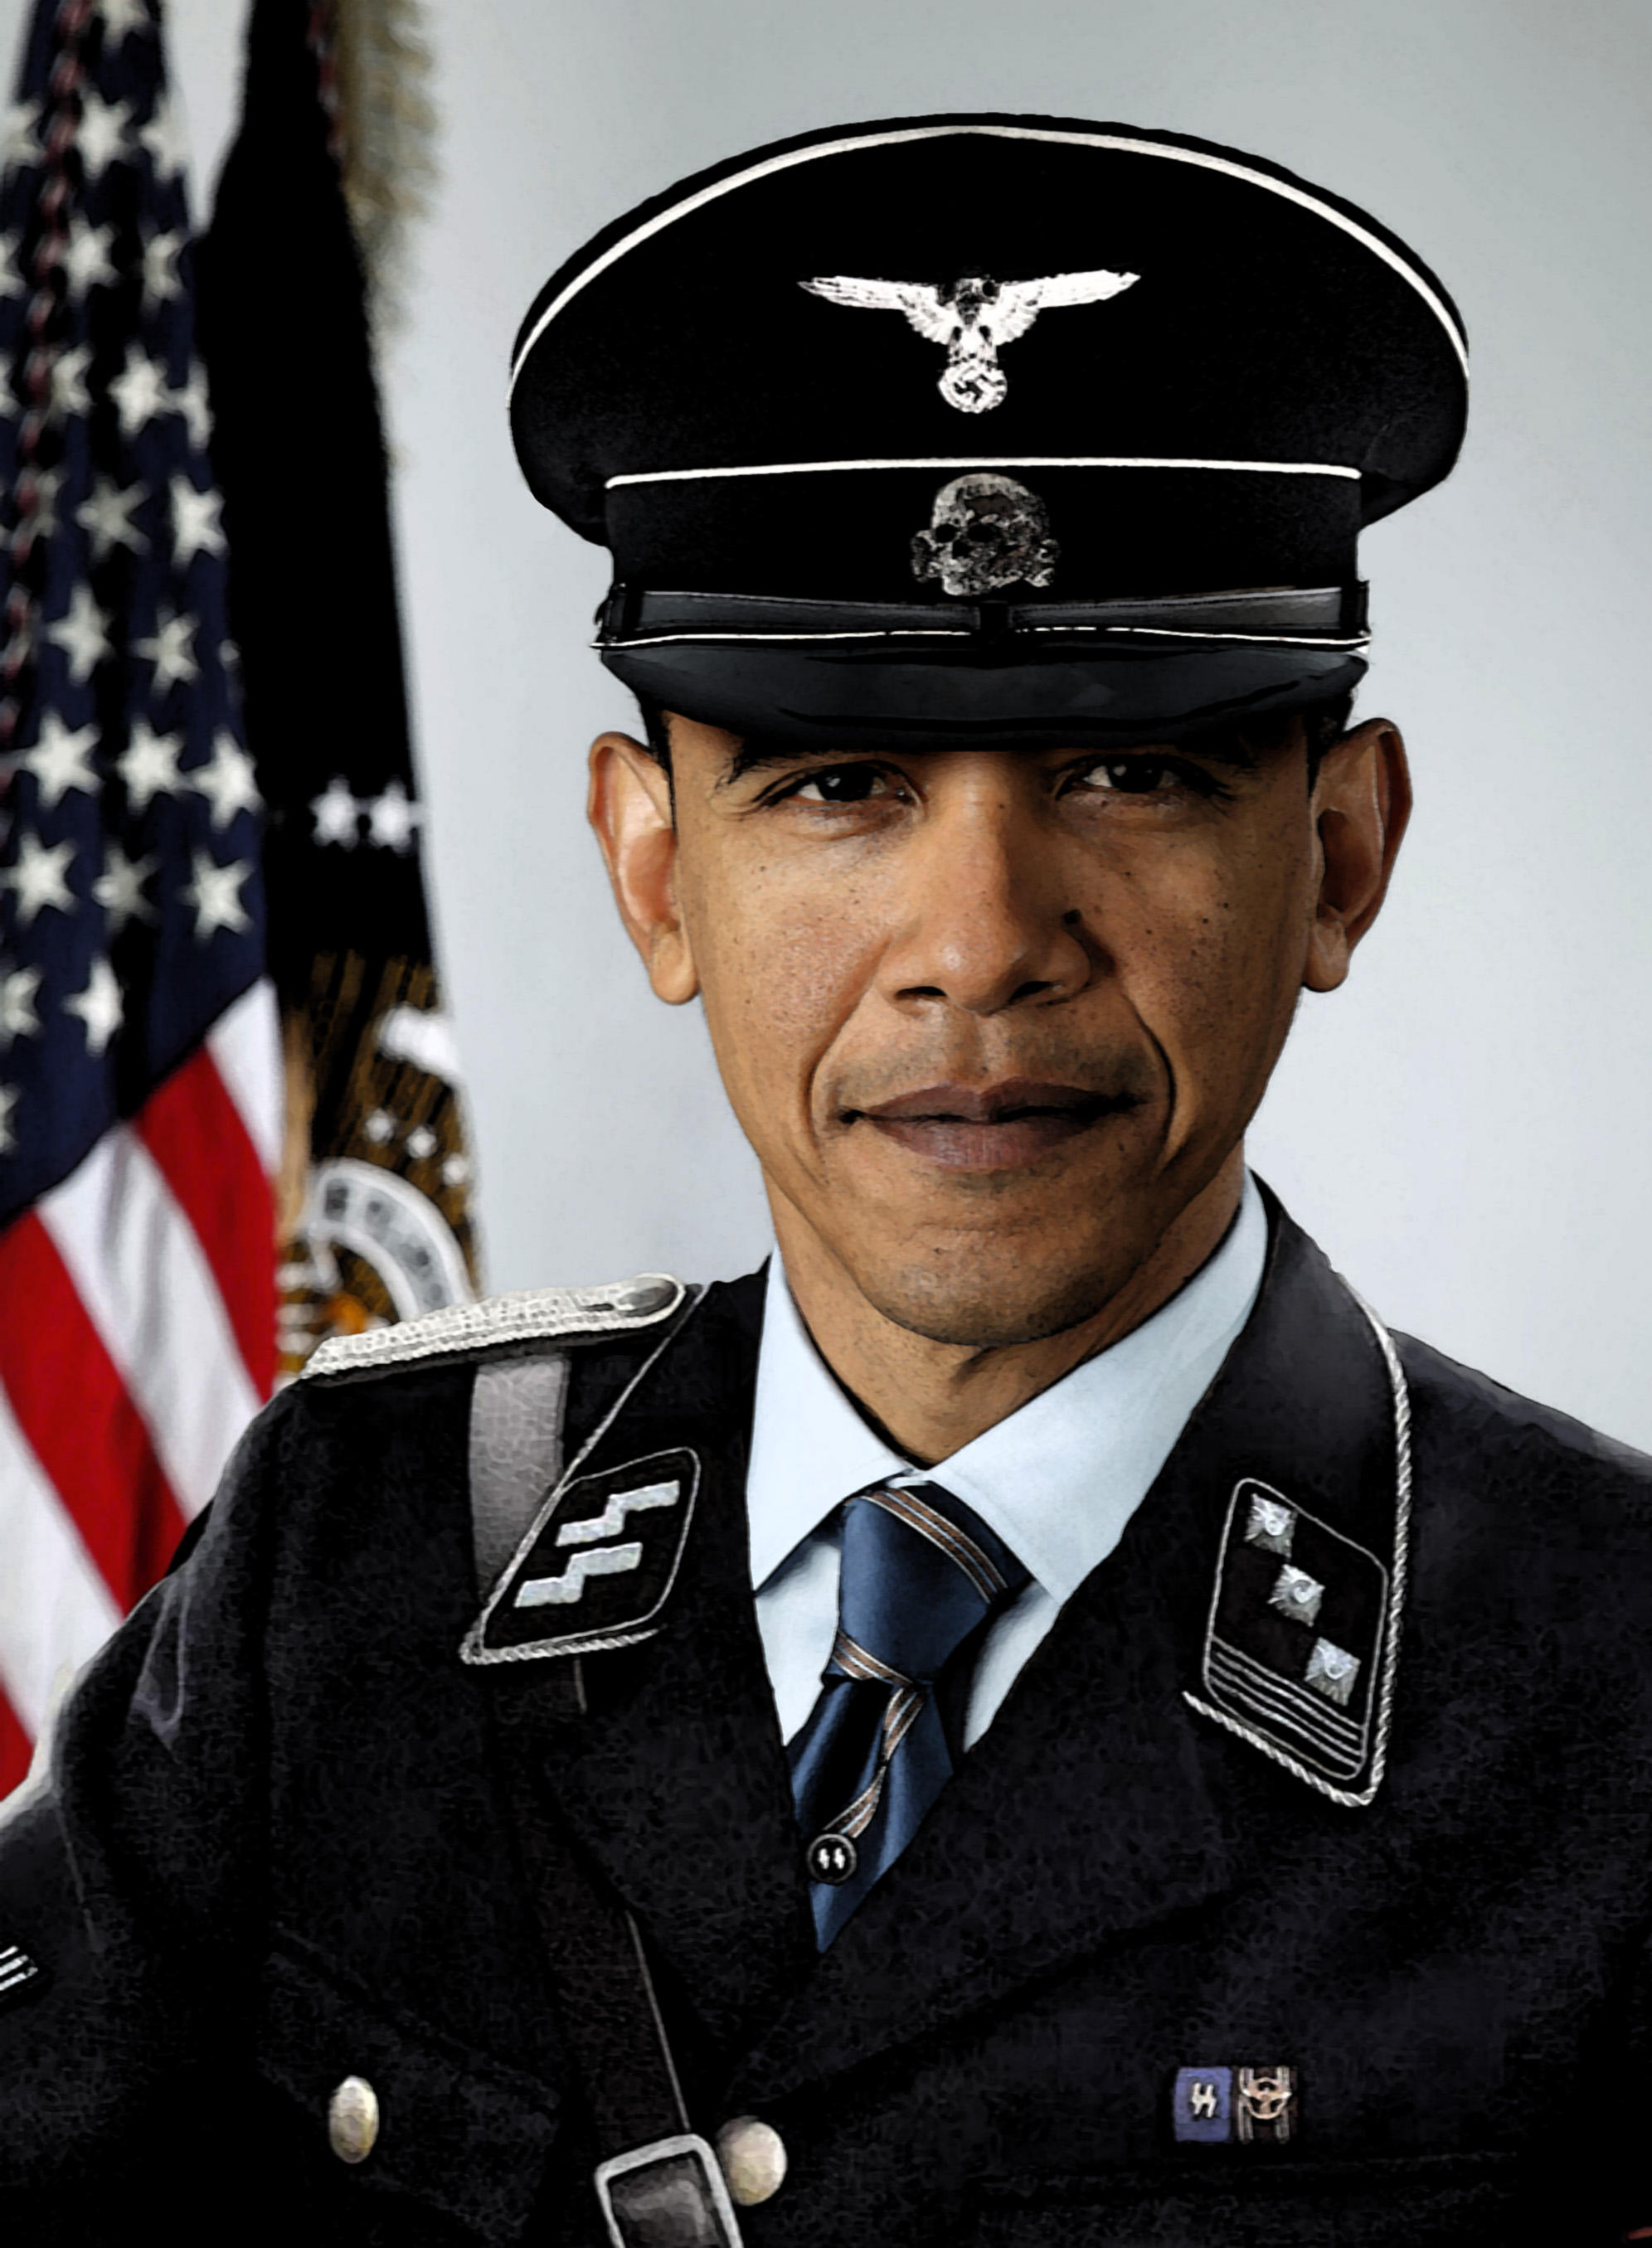 Nazi SS Obama by TheHappyDare on DeviantArt